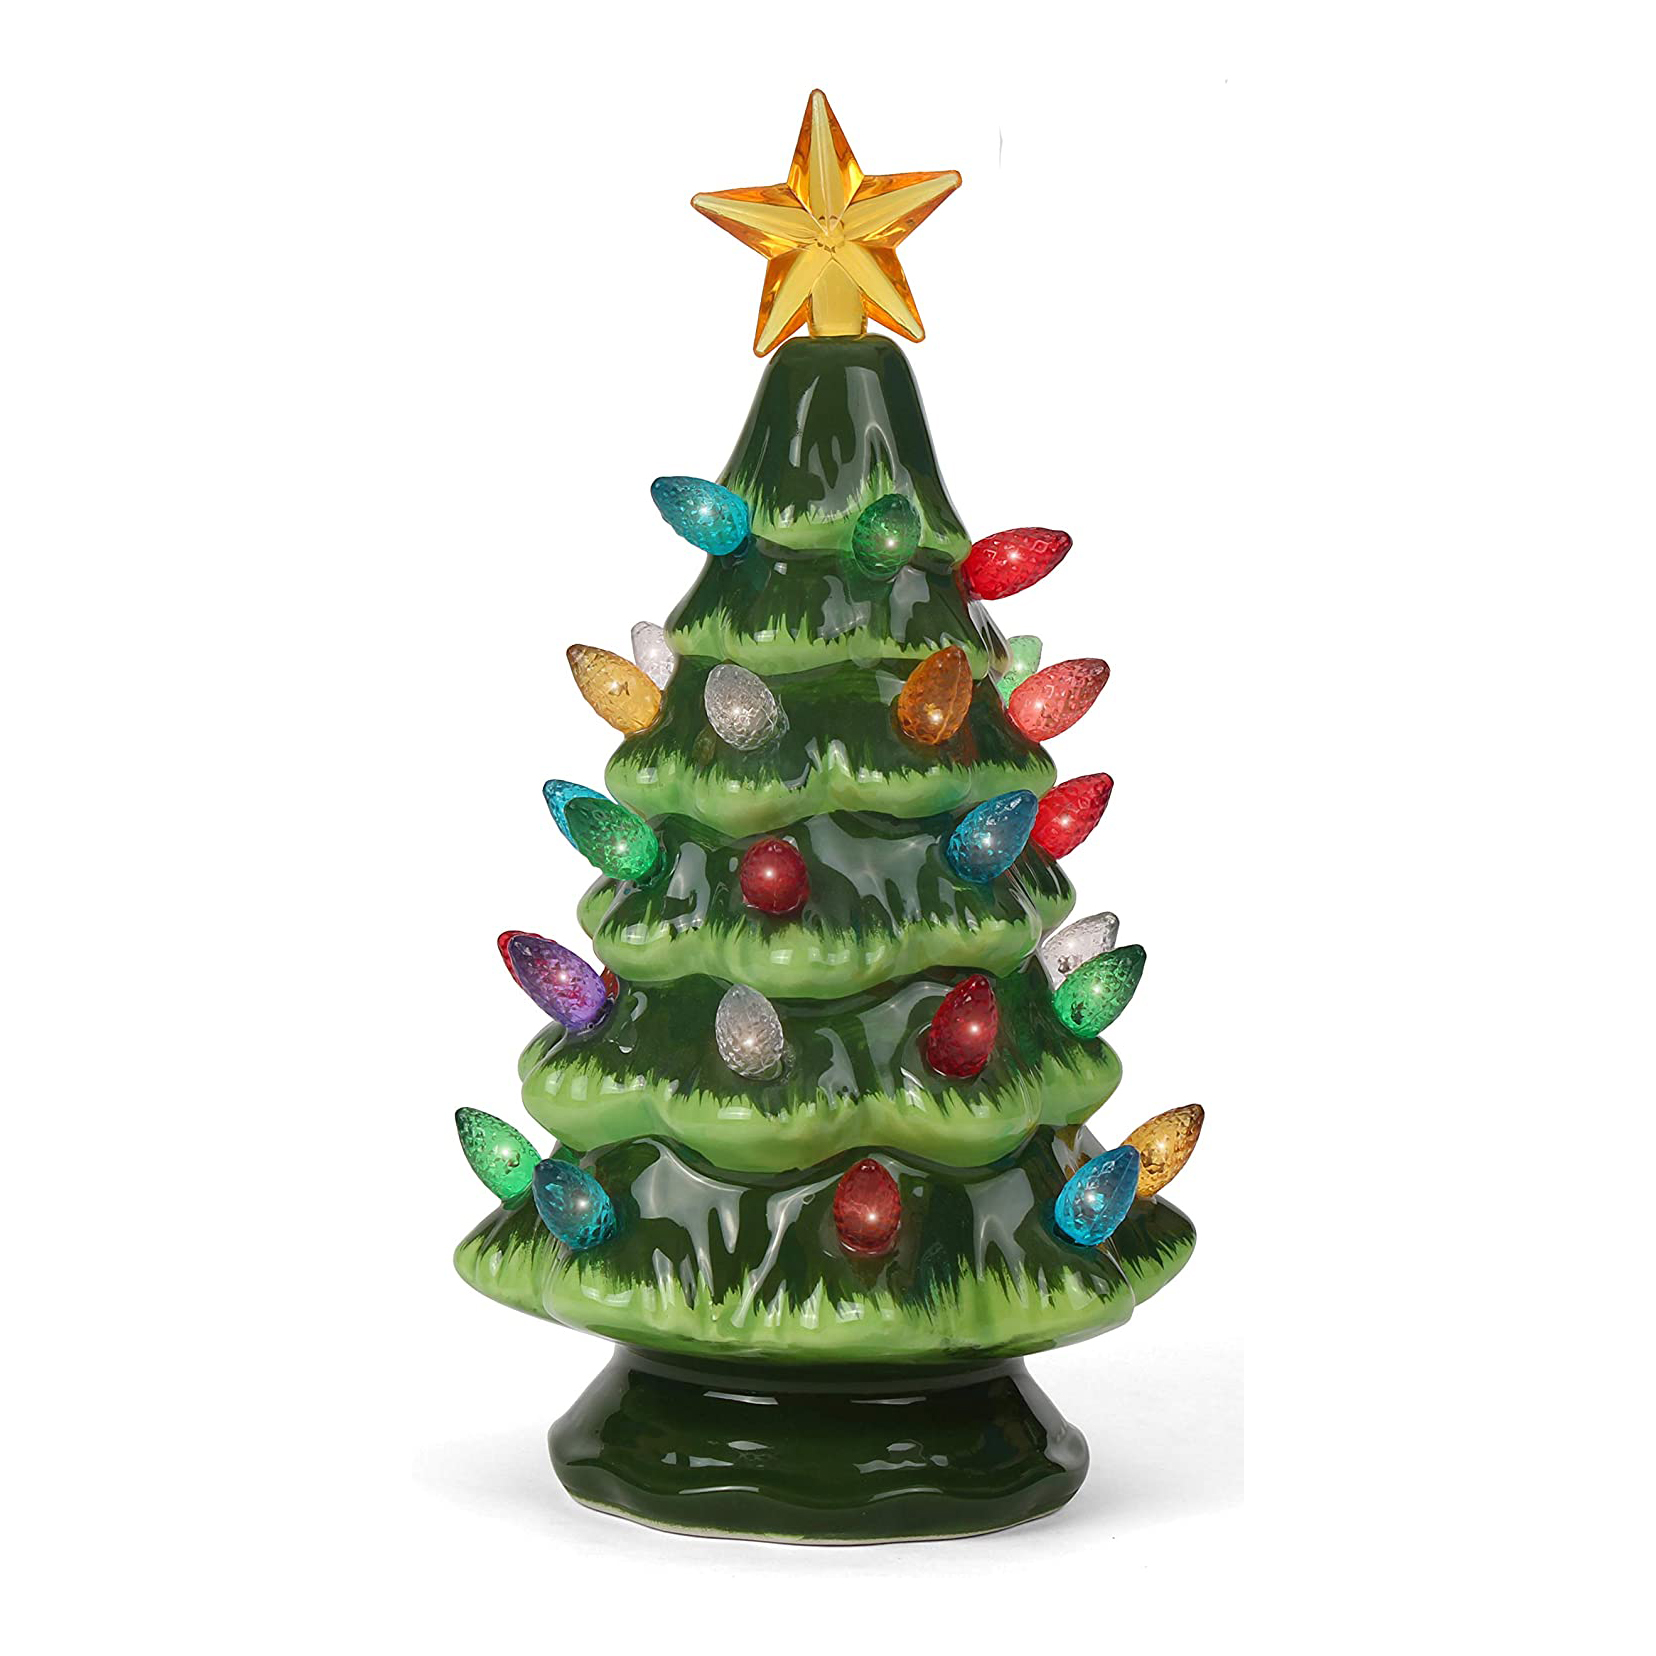 Small Green Ceramic Christmas Tree with Lights